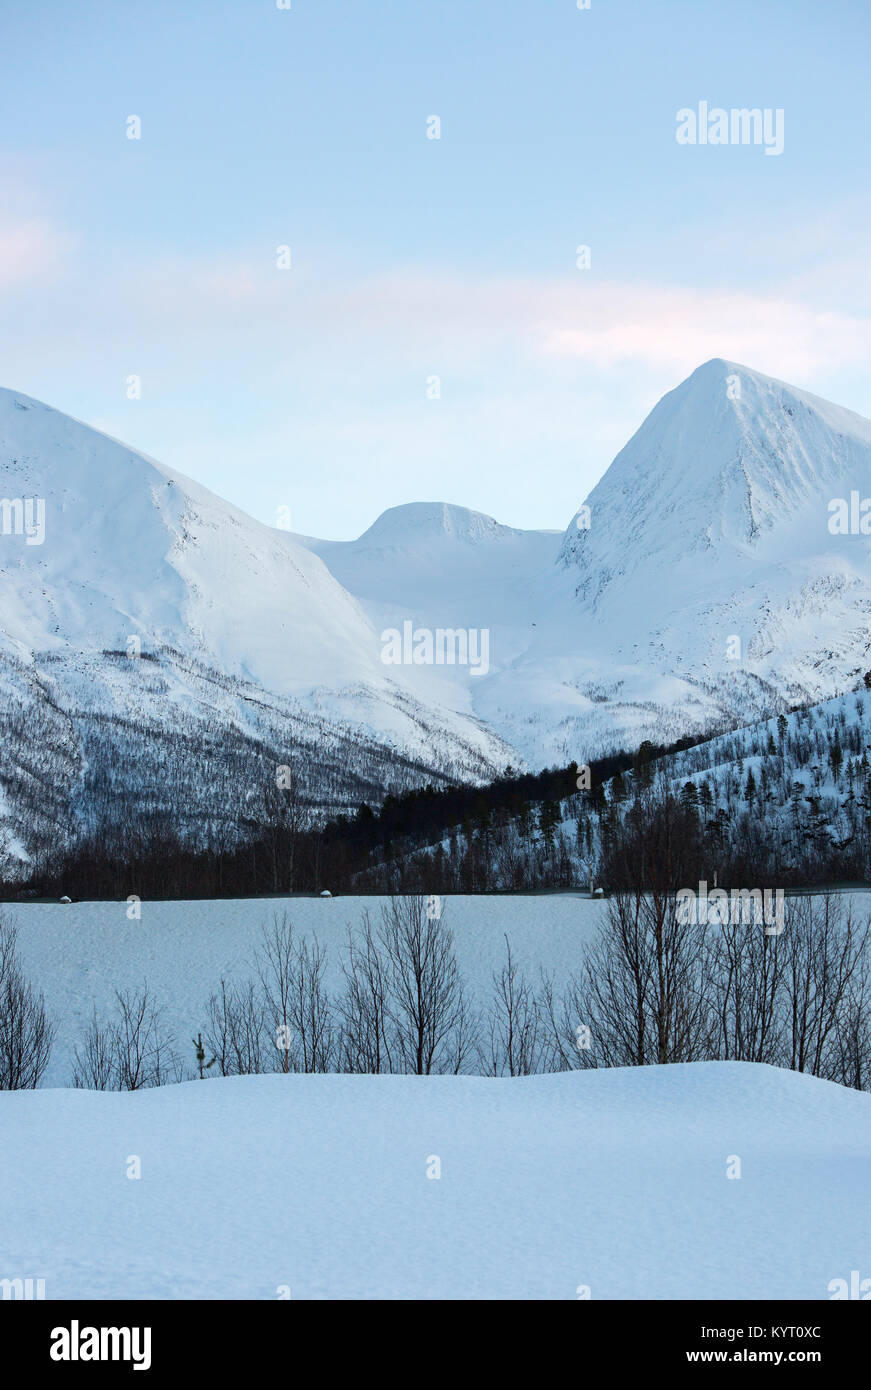 Snow Covered Mountains In Norway - Stock Image